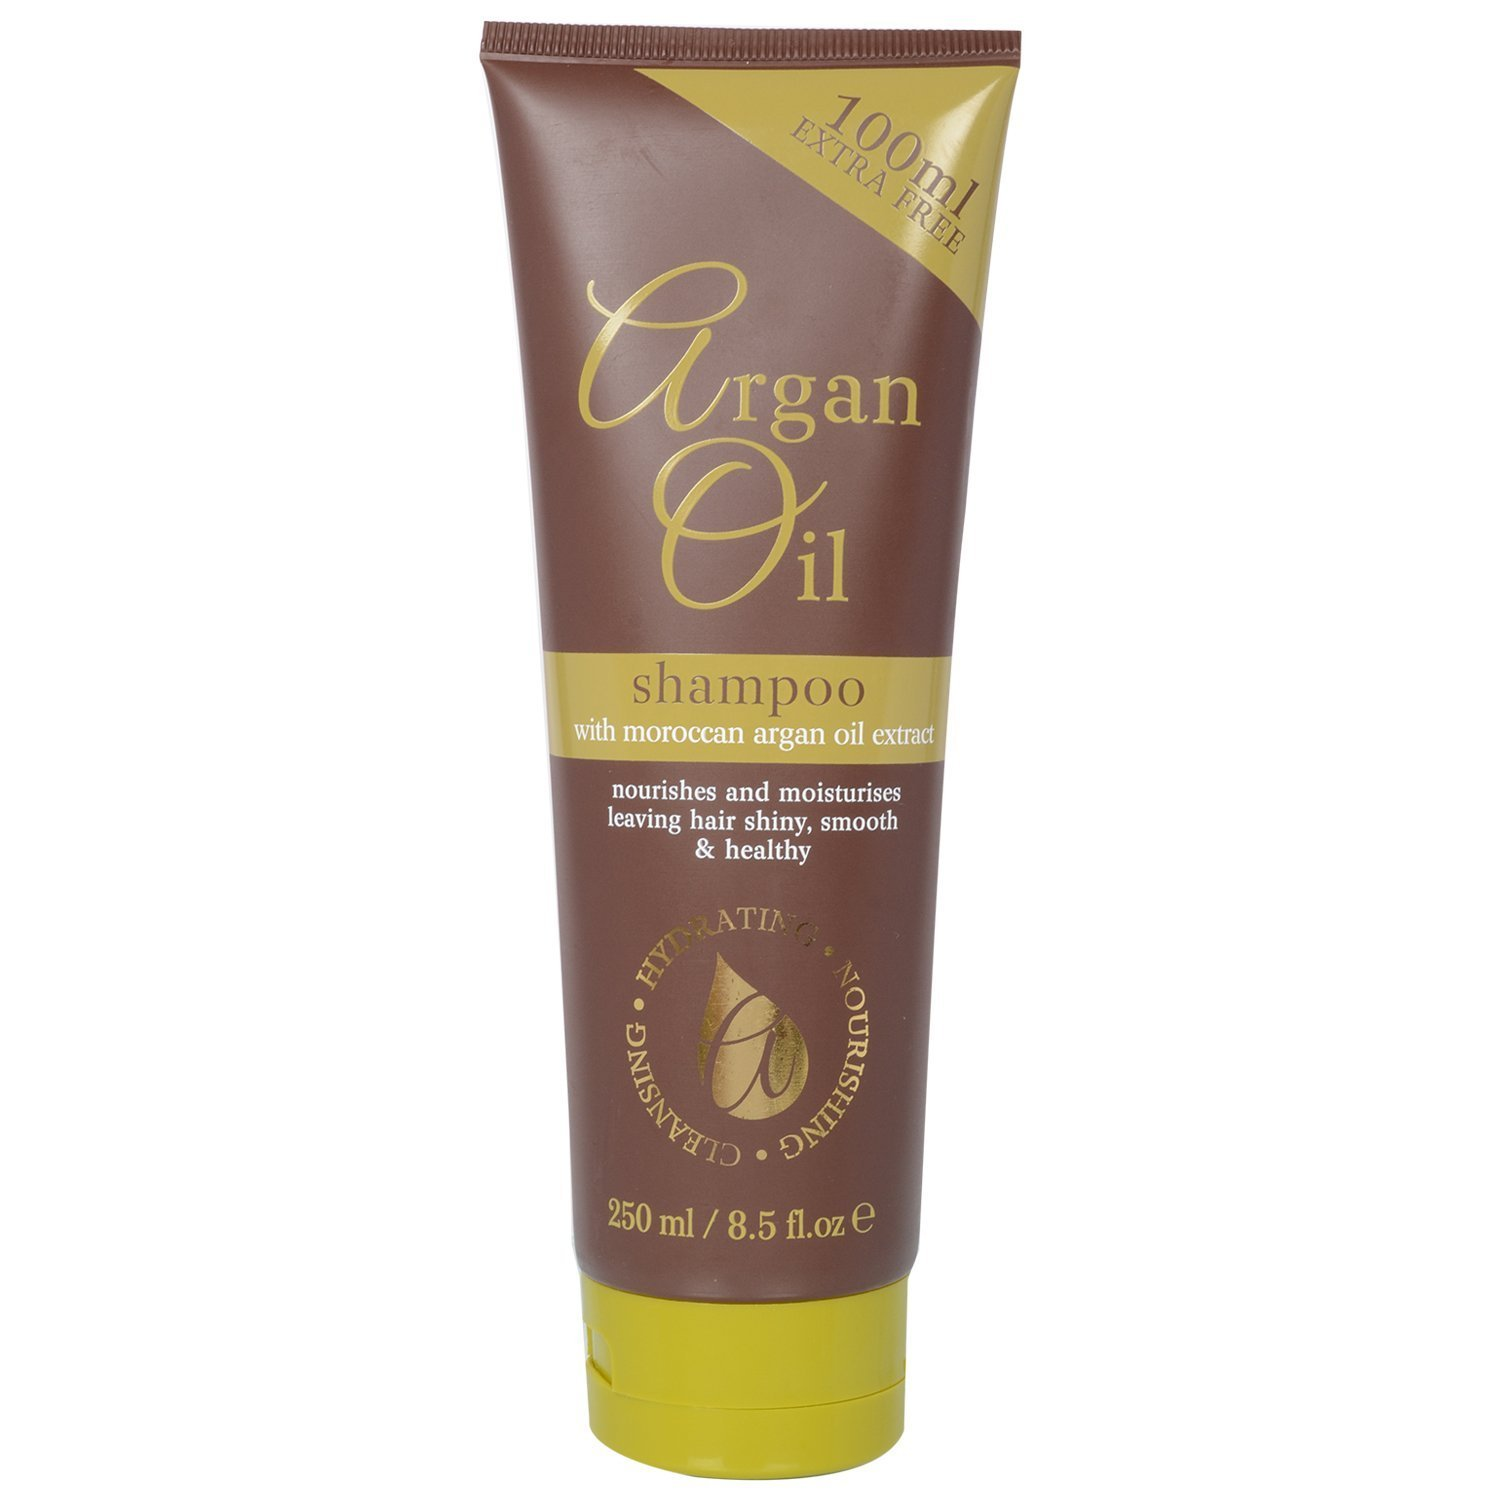 Argan Oil Shampoo with Moroccan Argan Oil Extract 300ml